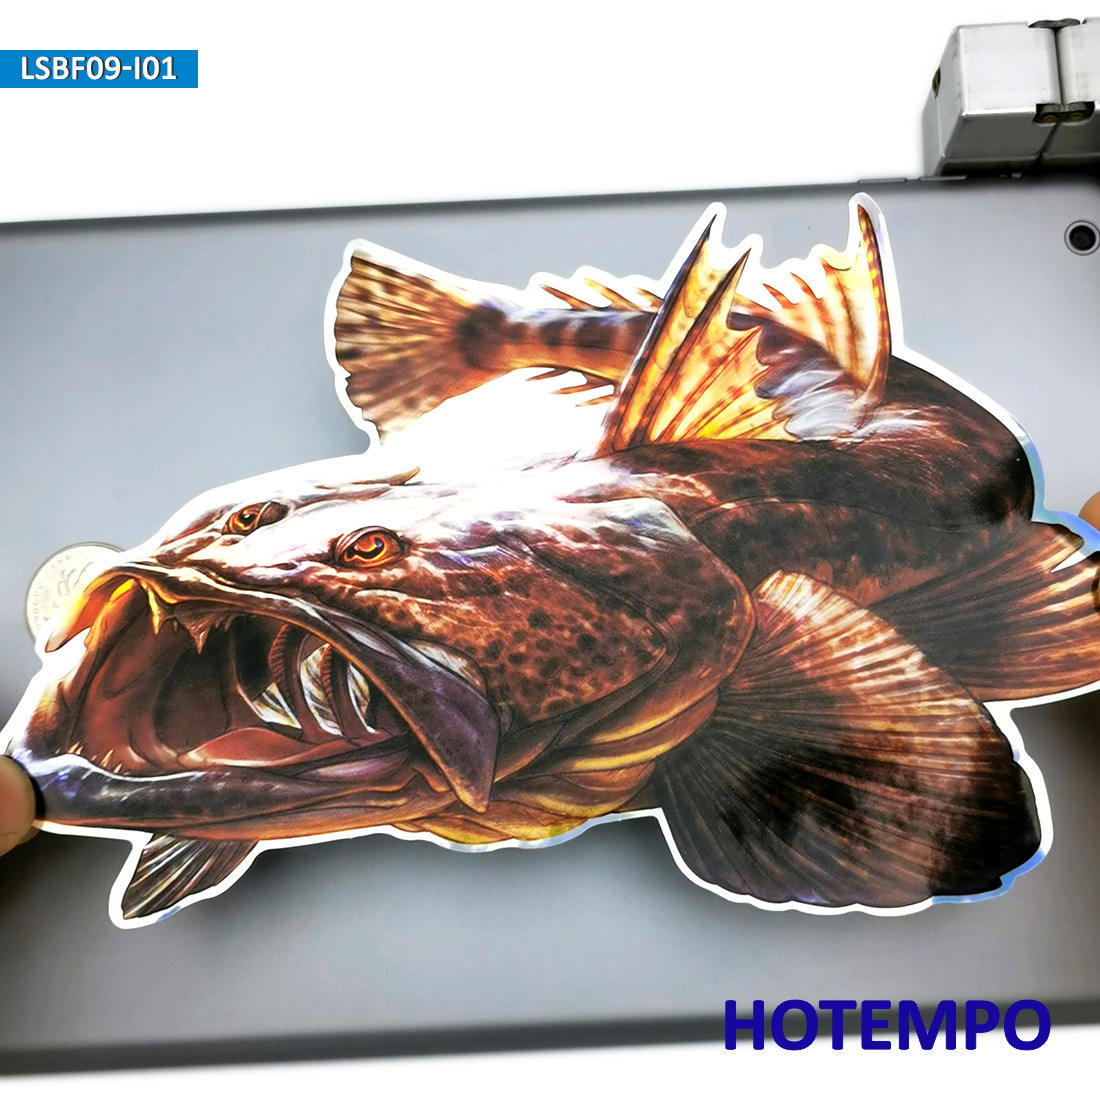 7.87inch 20cm Big Size Monkfish Laser Shining Fishing Anglerfish Outdoor Stickers For Laptop Luggage Car Glass Art Decal Sticker